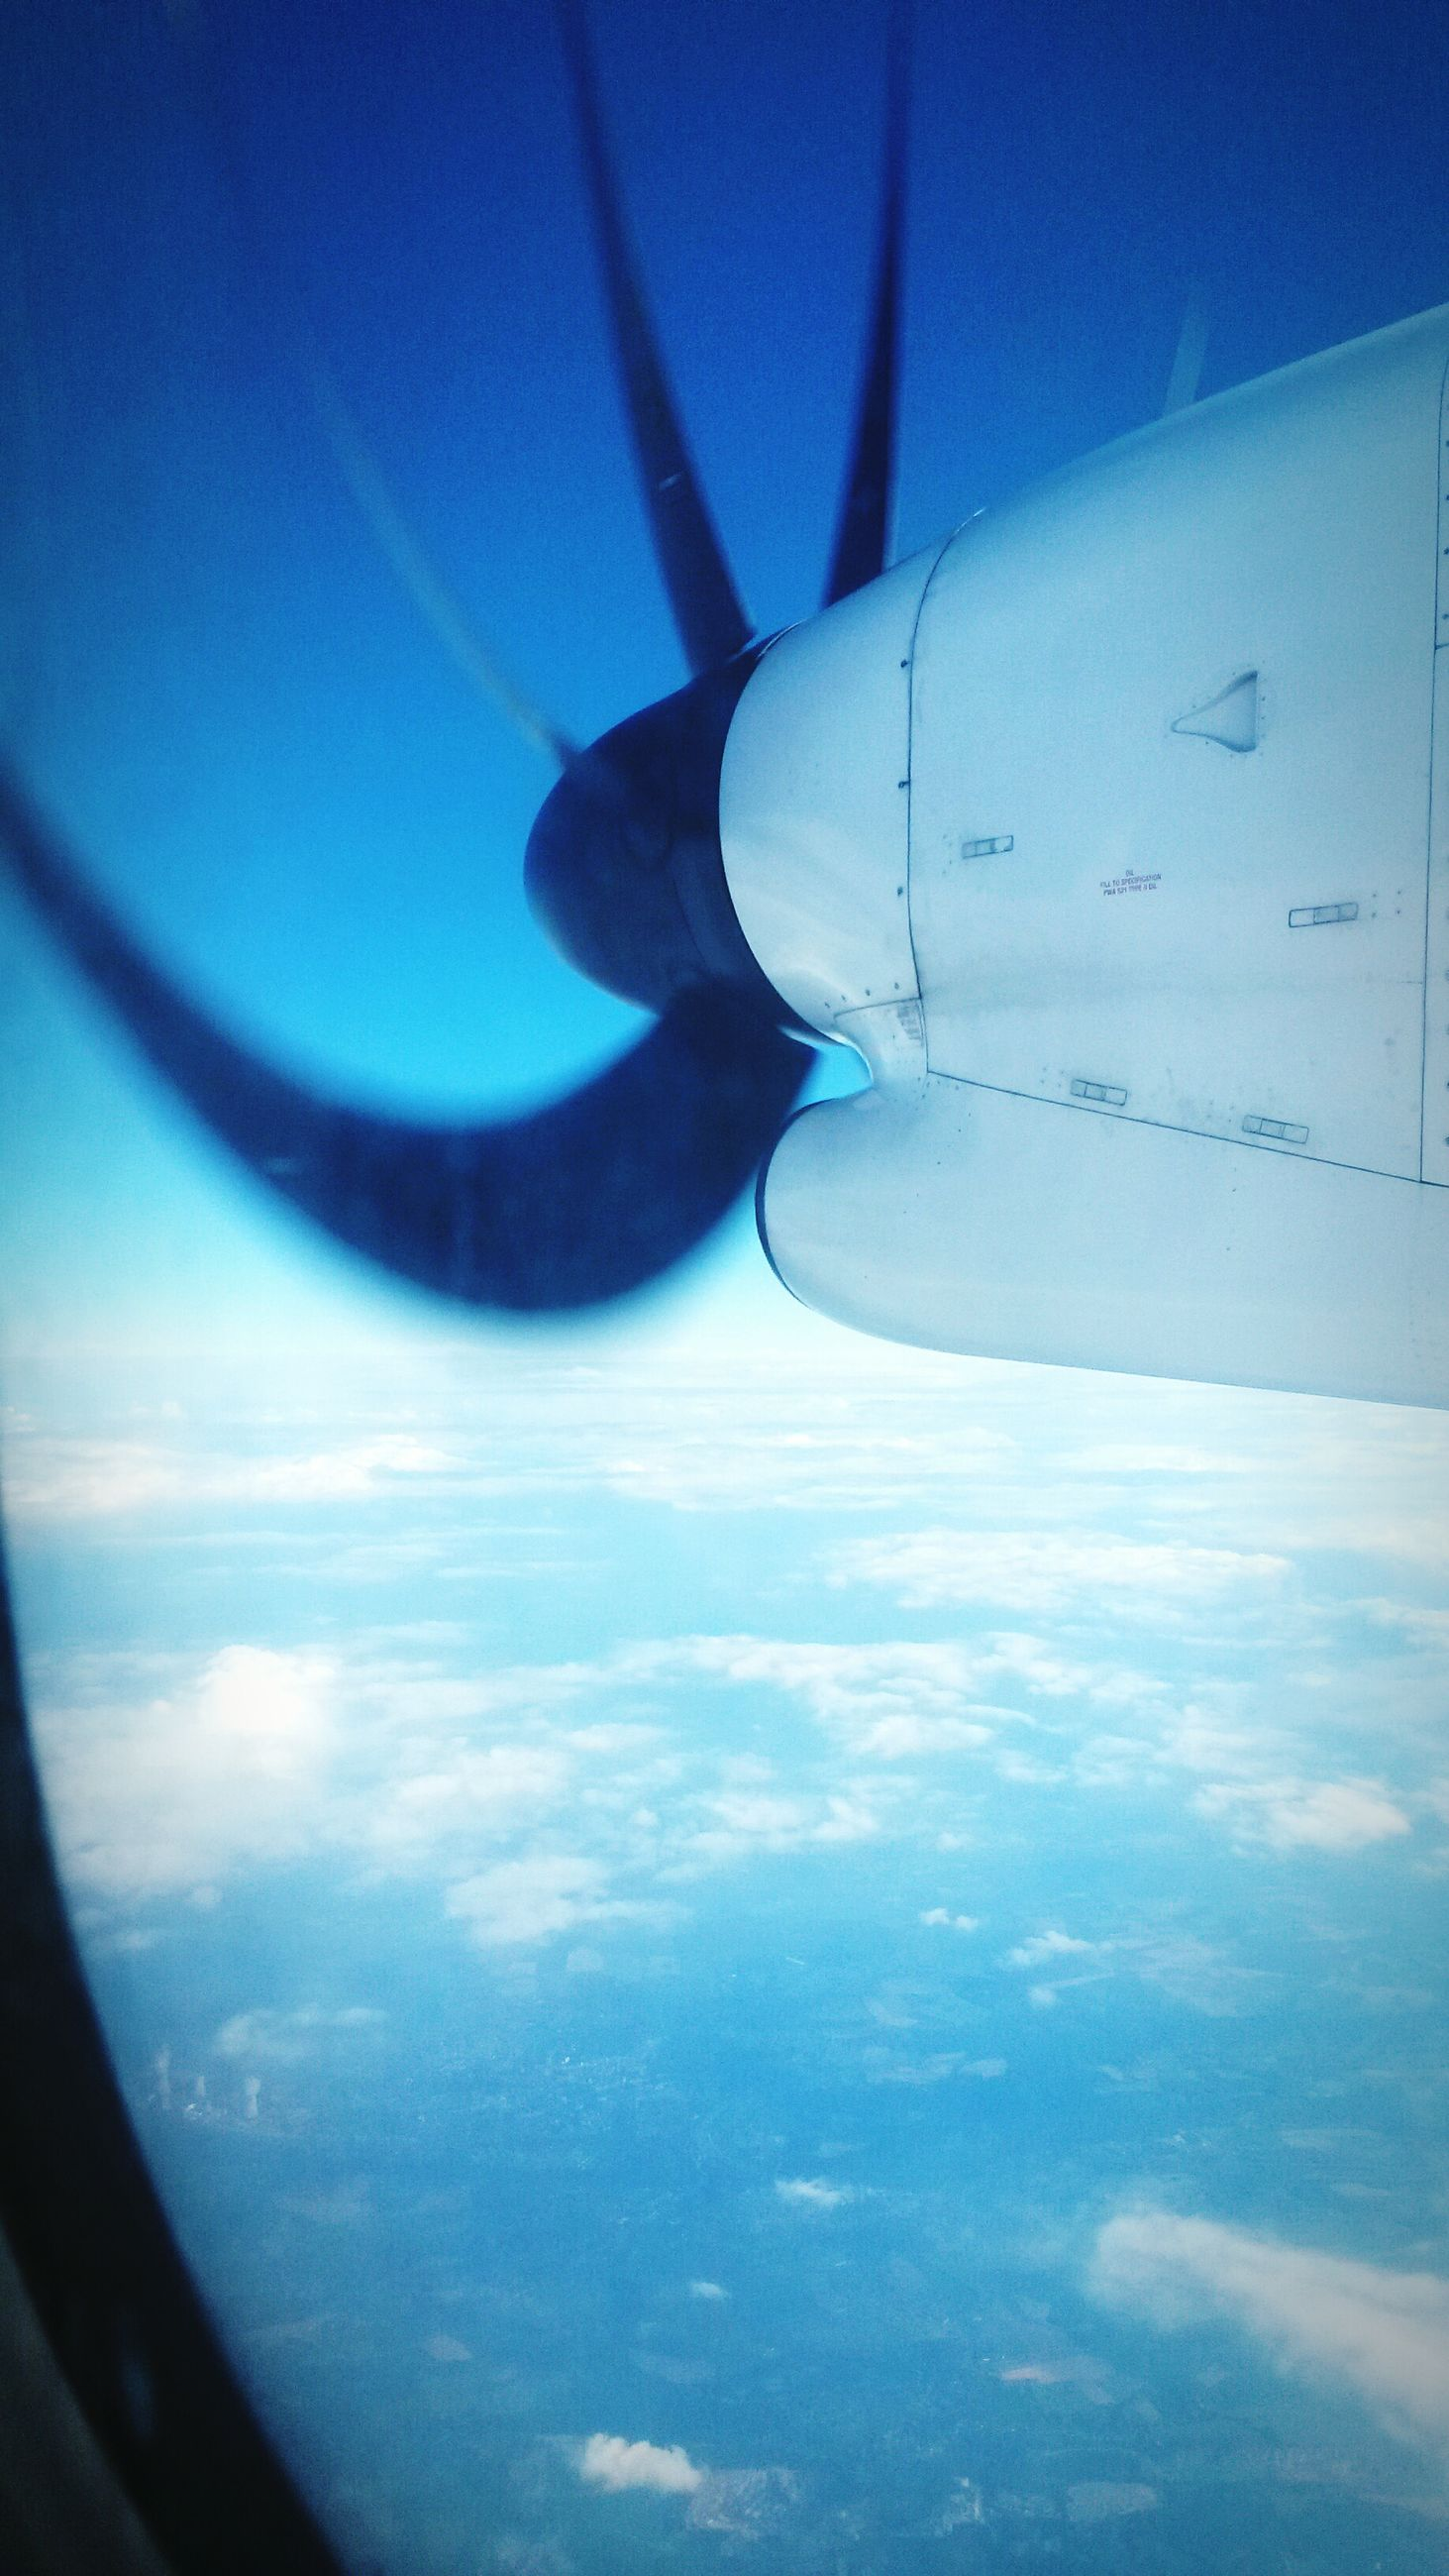 transportation, airplane, mode of transport, air vehicle, flying, blue, aircraft wing, part of, cropped, travel, mid-air, aerial view, vehicle interior, sky, journey, transparent, on the move, vehicle part, window, glass - material